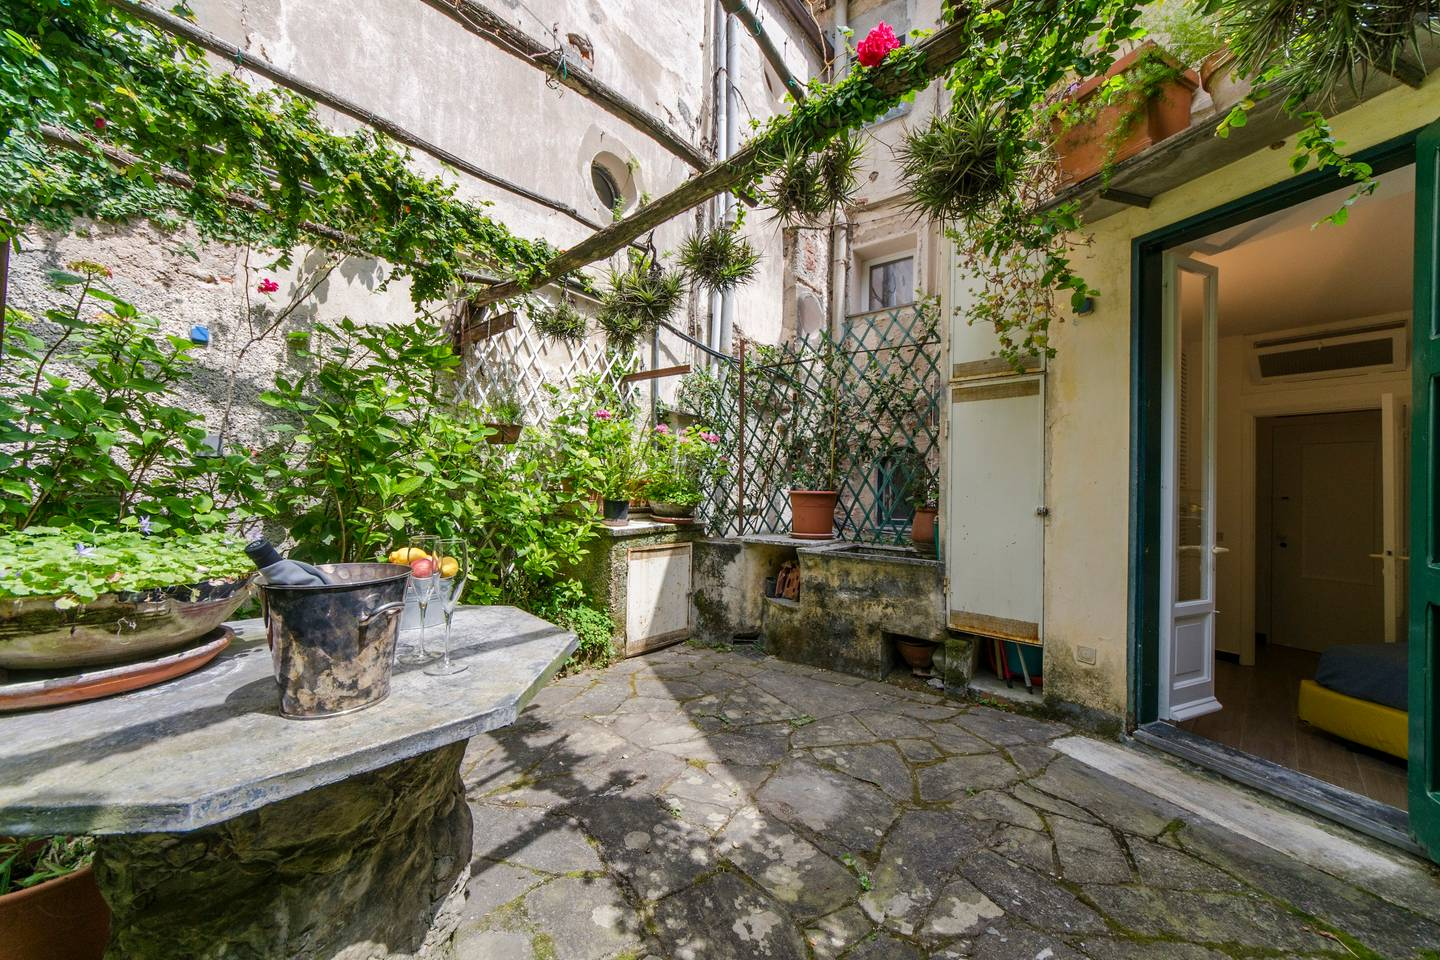 Apartment Hintown  La Finestra sulla Piazzetta a Portofino photo 18397211